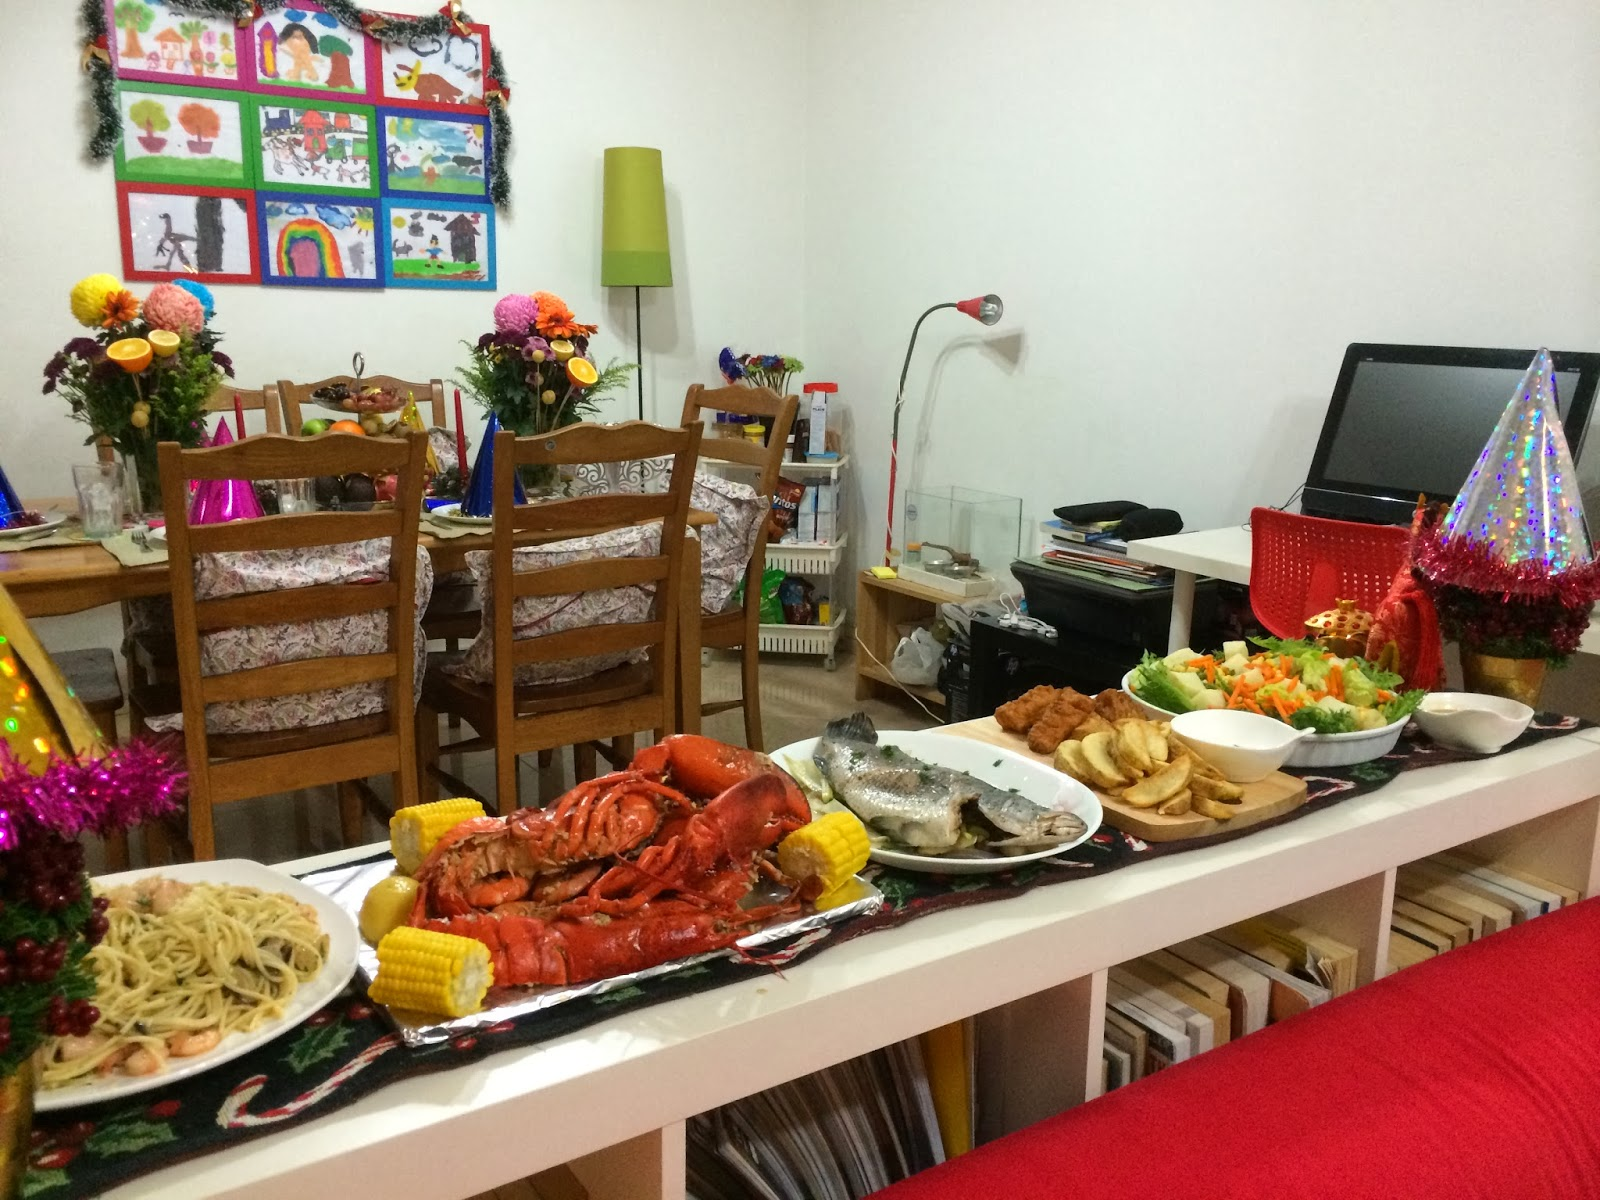 Filipino table setting - This Is The Entire Feast Our Media Noche In Filipino Language For The New Year We Opted For A Seafood Theme Since Christmas Was More On Meat